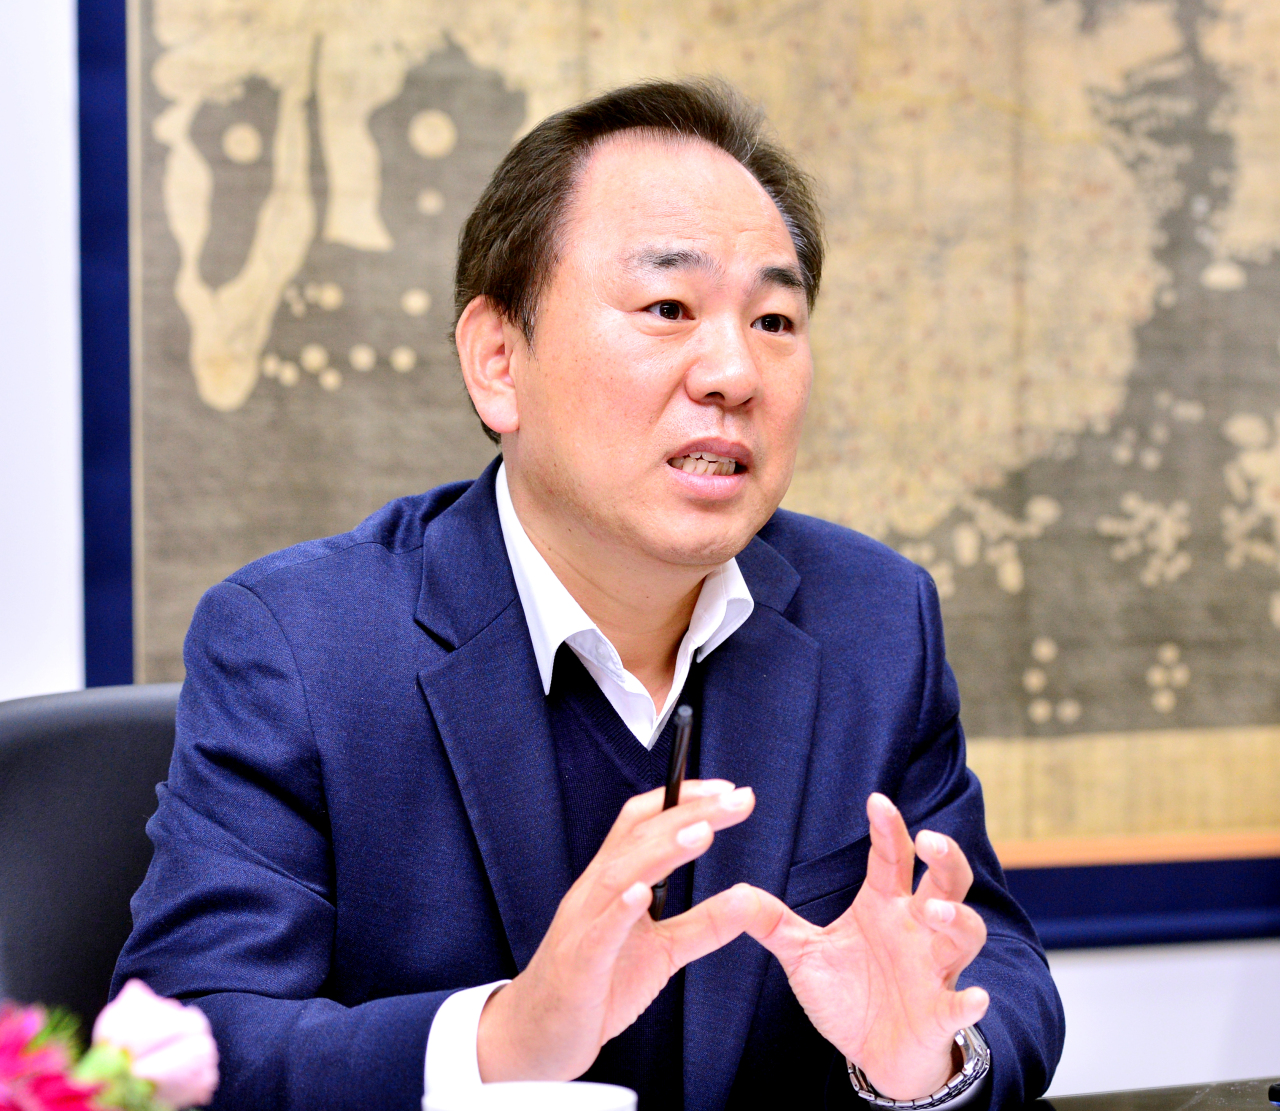 President of the Korea Immigration Service Foundation Kim Do-gyun speaks to The Korea Herald at his office in Yangcheon-gu, southwestern Seoul. (Park Hyun-koo/The Korea Herald)